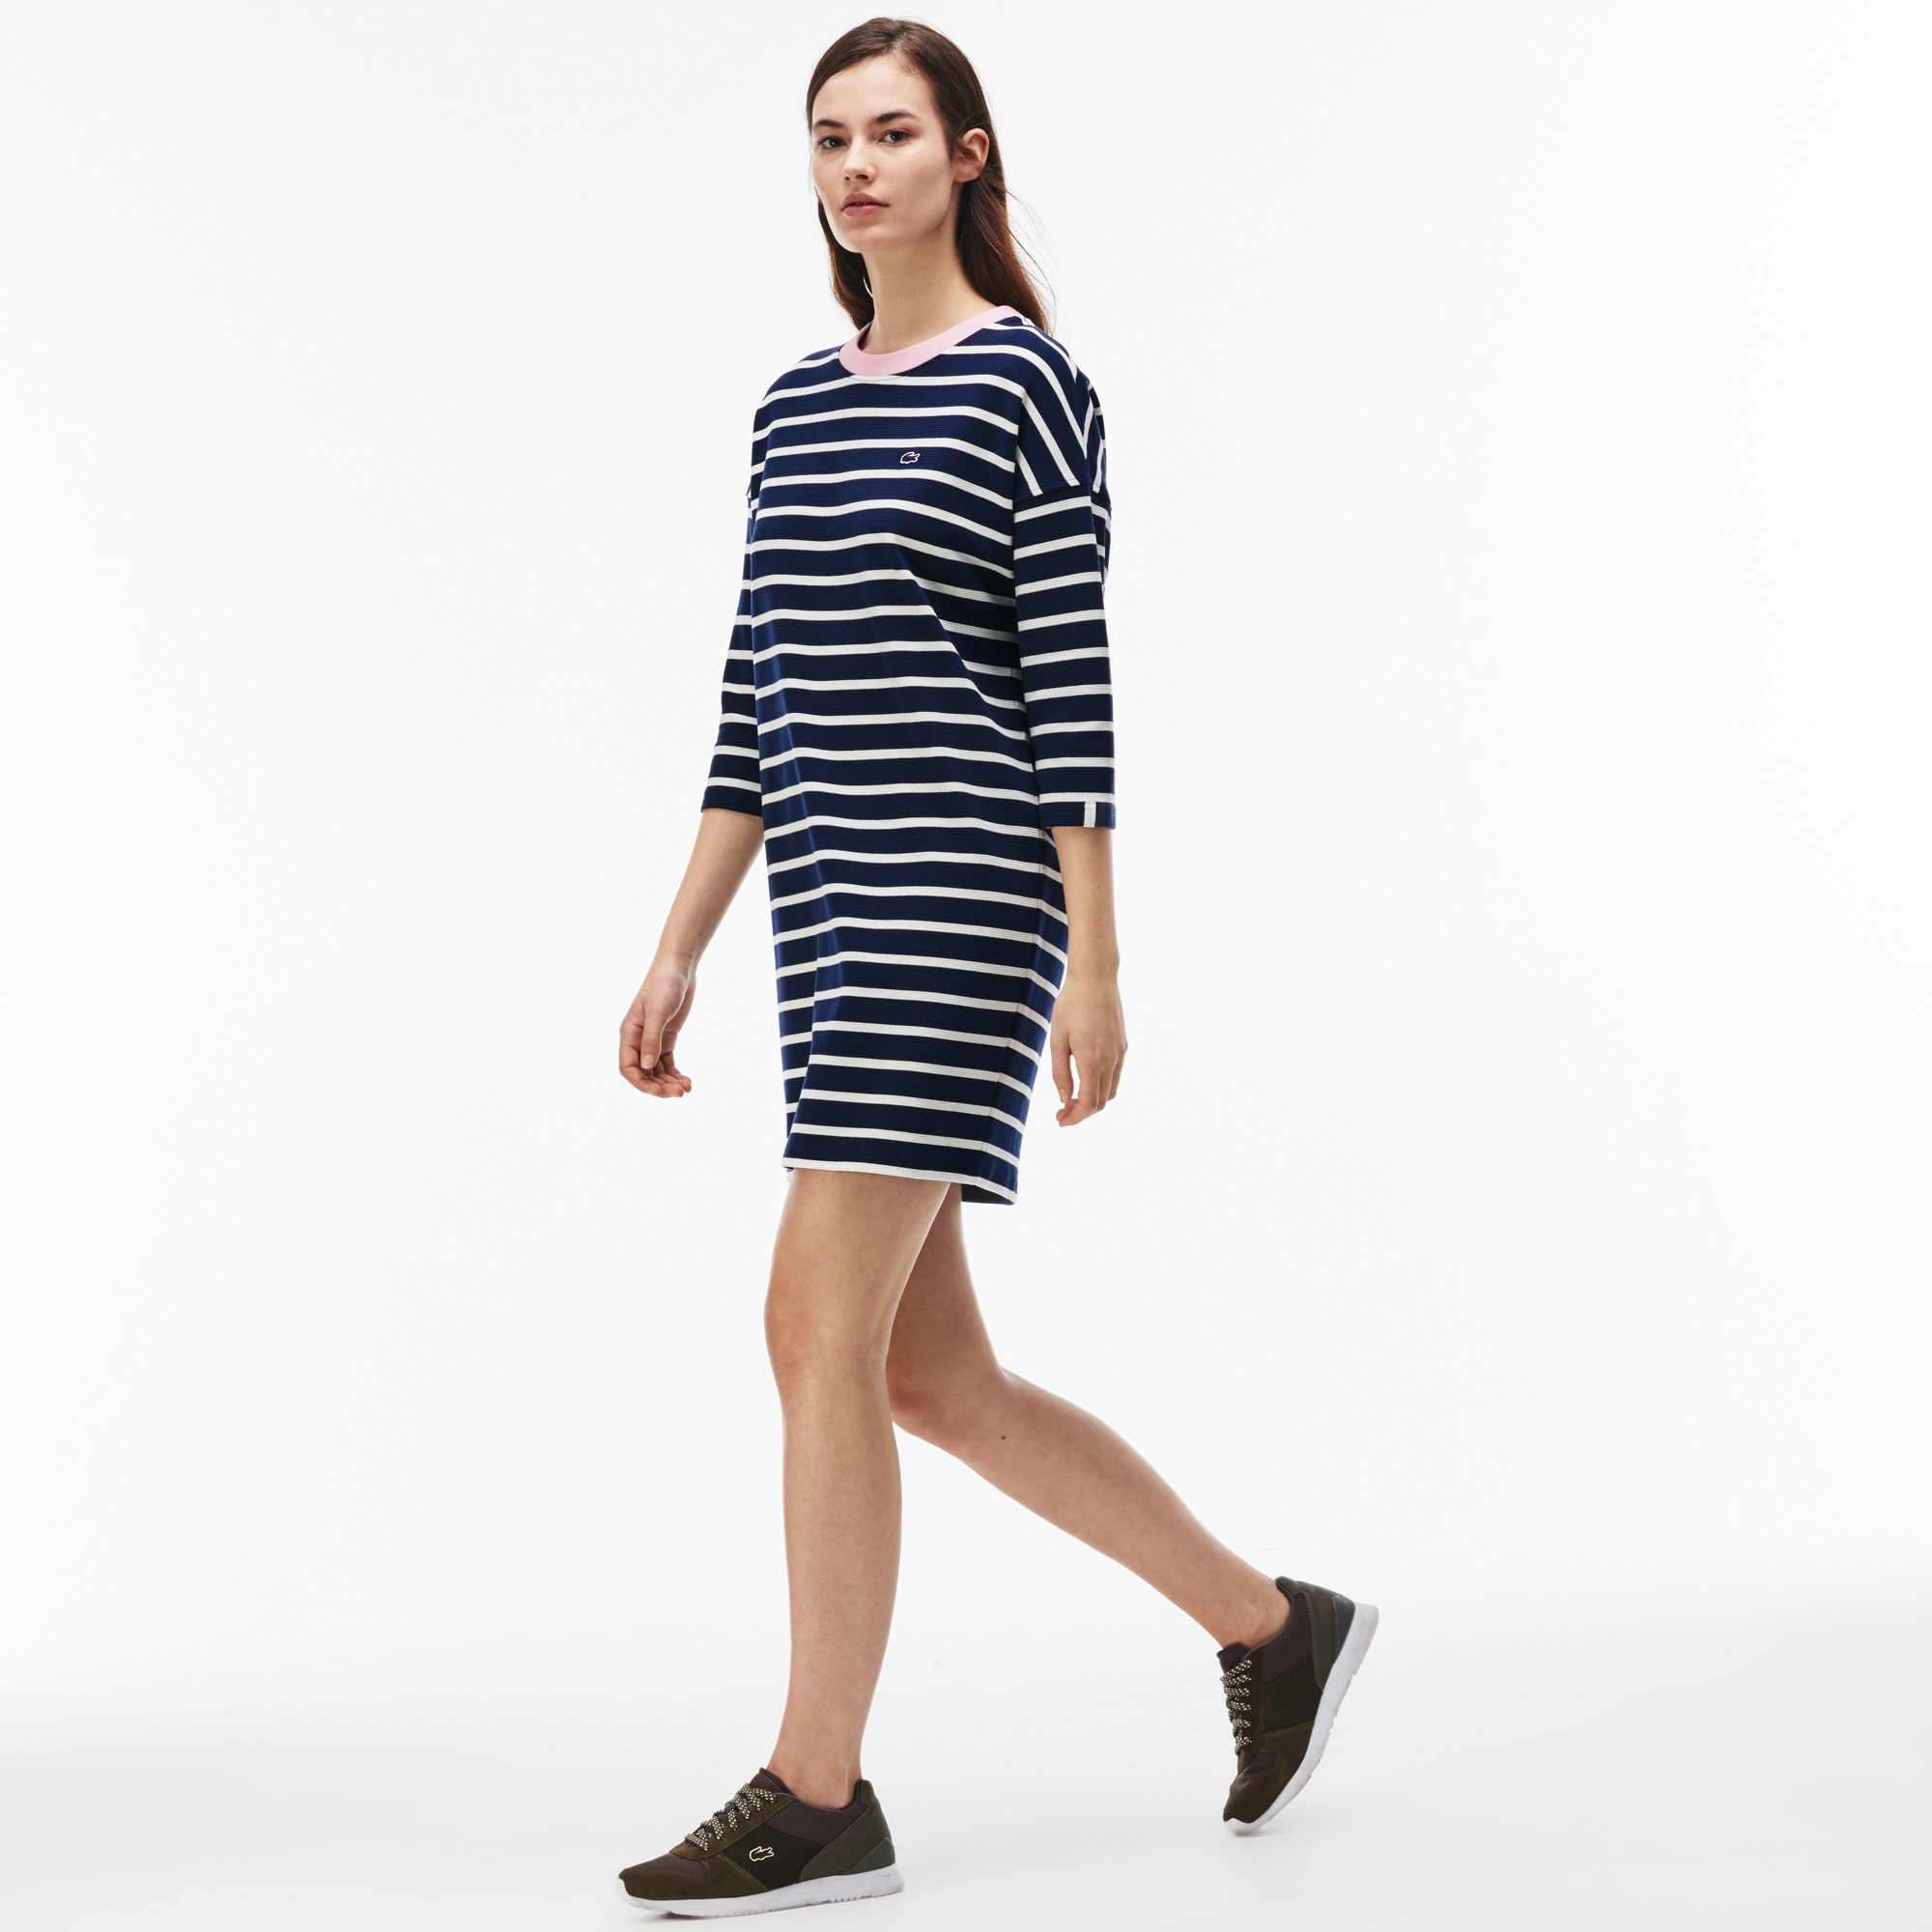 Women's Lacoste LIVE Striped Ottoman Knit Sweatshirt Dress